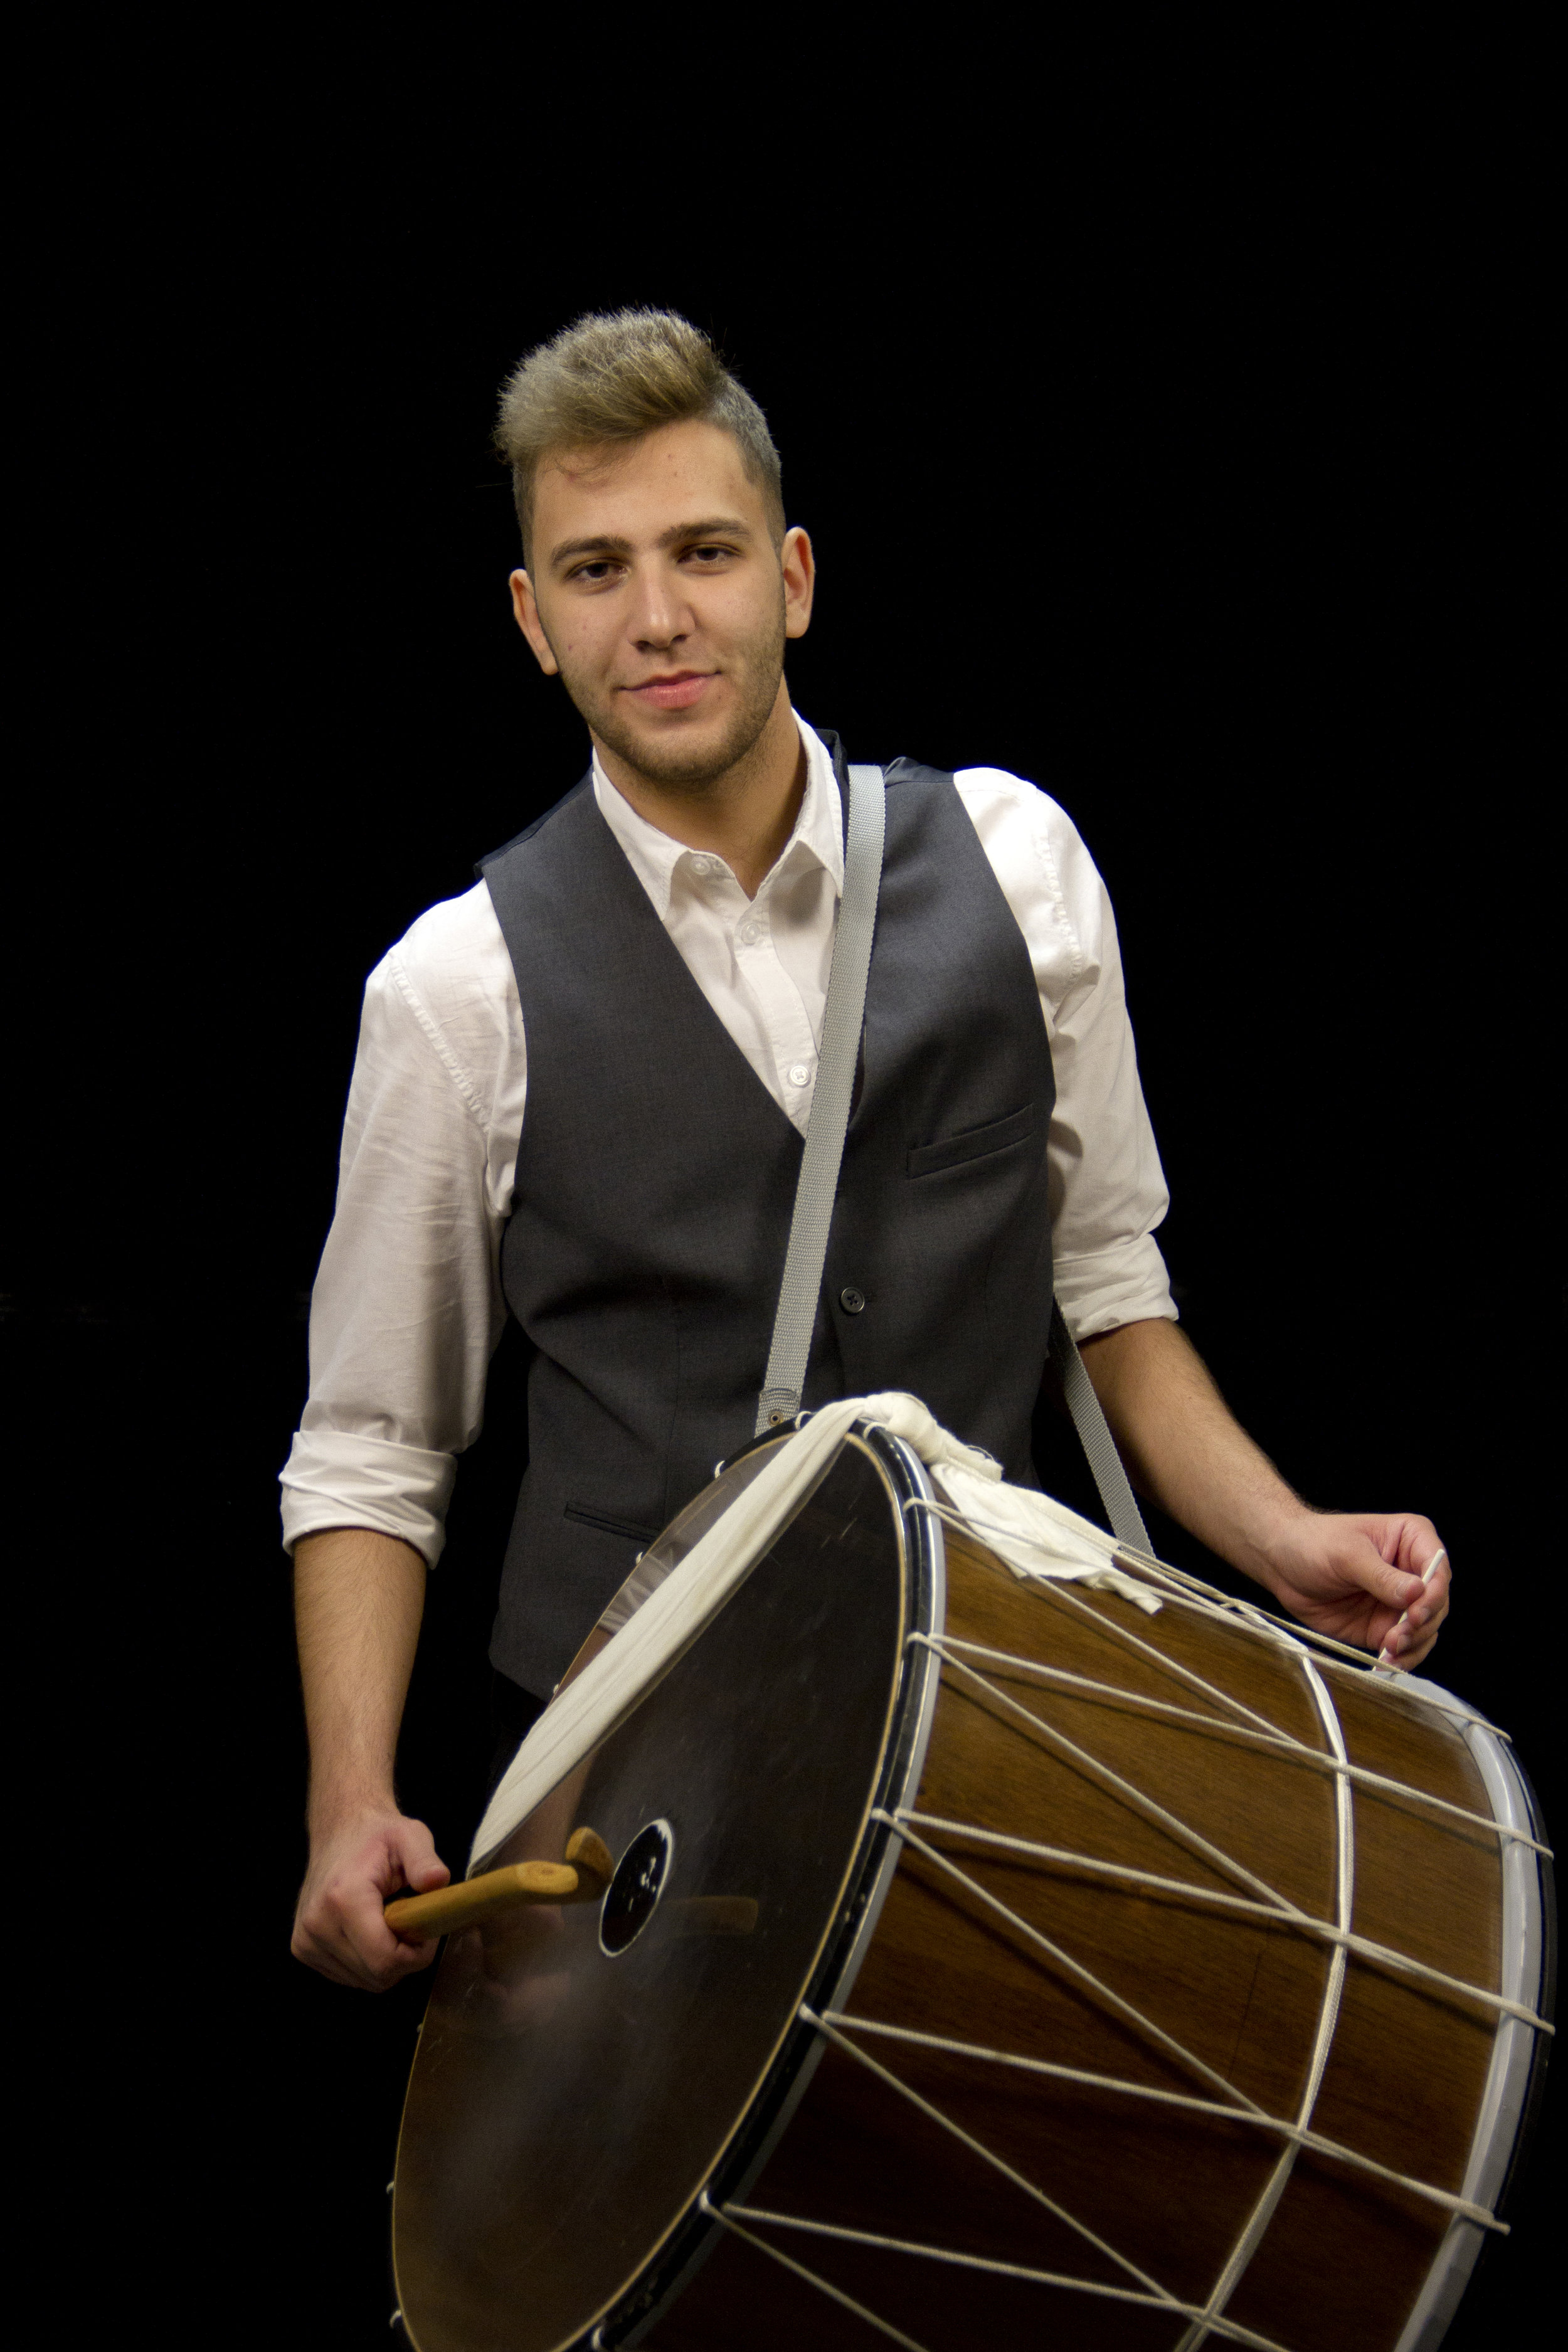 Kostas Karamesios - Konstantinos Karamessios was born in 1997 in Athens. From the age of 8 he began his work with music and rhythm, studying drums. With his entrance at the Ilion Music School he dealt with traditional percussion. He has systematically studied darbuka, bendir, ntefi, and then davul and kajon. He has been studying next to the famous musician Yannis Gevgelis, with whom he continues his studies with Konstantinos Kalatzis, who has been a professor at the Music School. He is now studying at the Department of Economic and Regional Development at Panteion University, while his main occupation is his professional career with the Pentaichon.